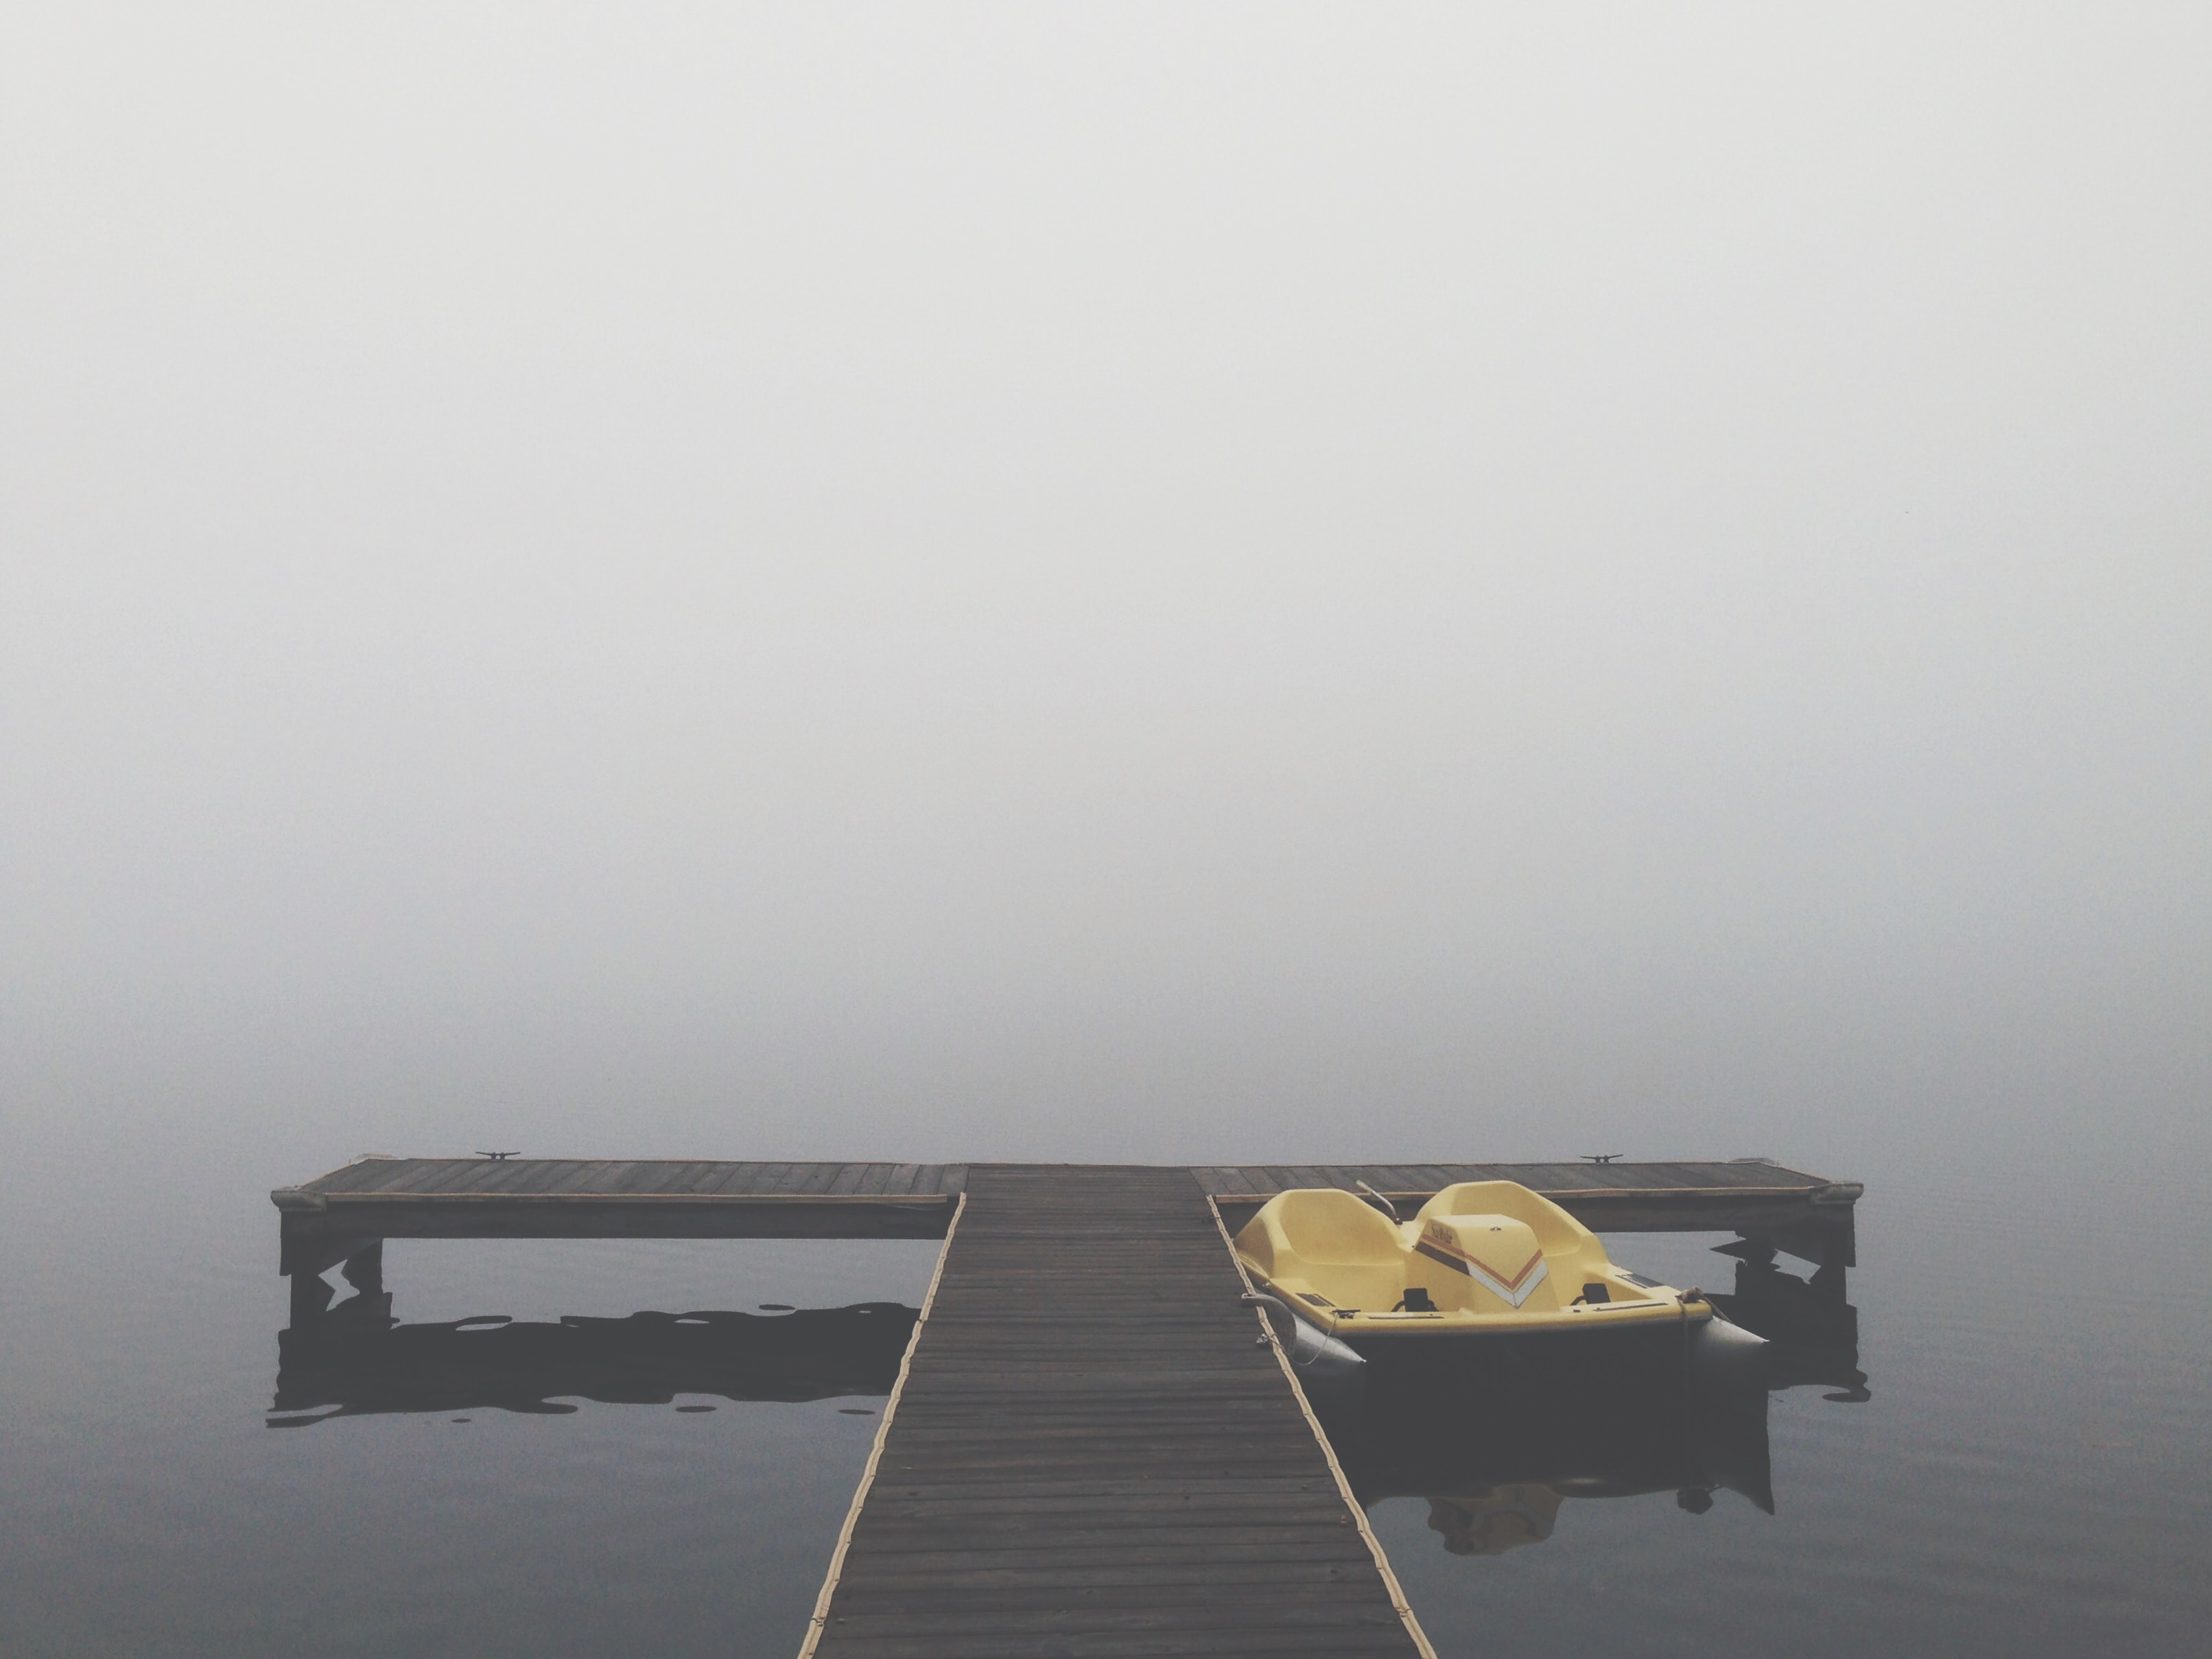 Empty wooden dock with paddle boat on a lake on a gray foggy day